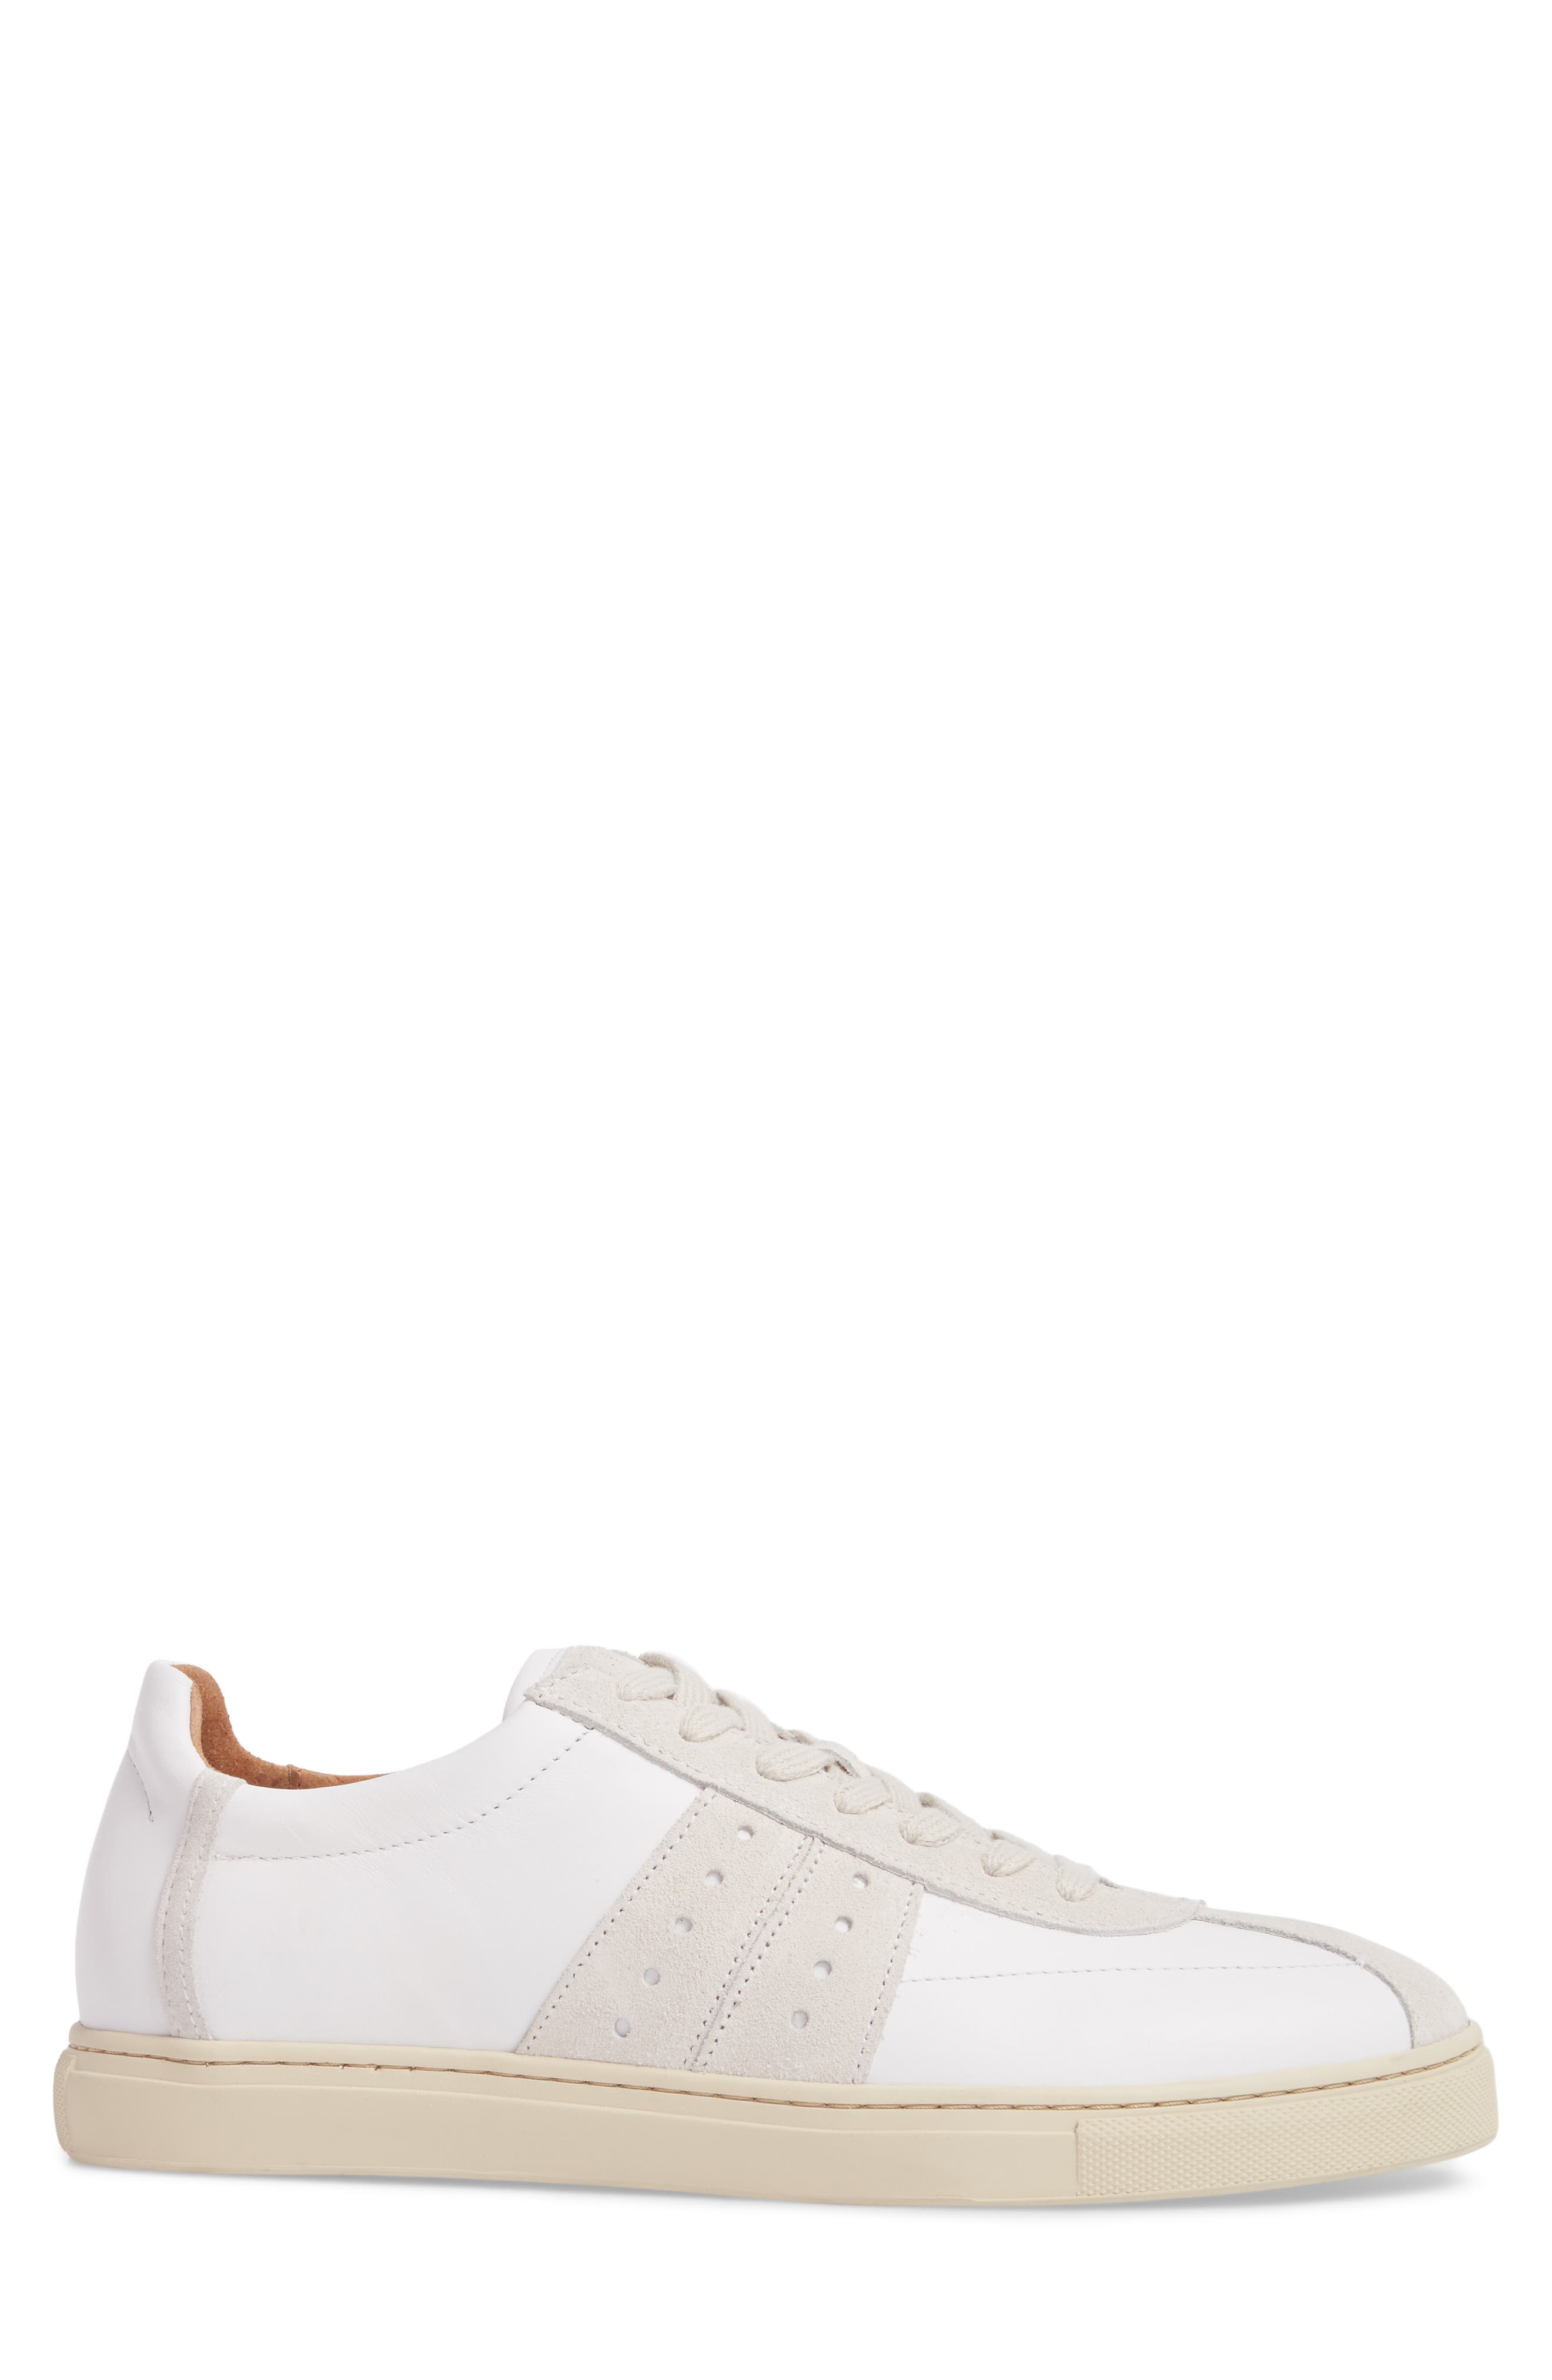 Duran New Mix Sneaker,                             Alternate thumbnail 3, color,                             White Leather/ Suede